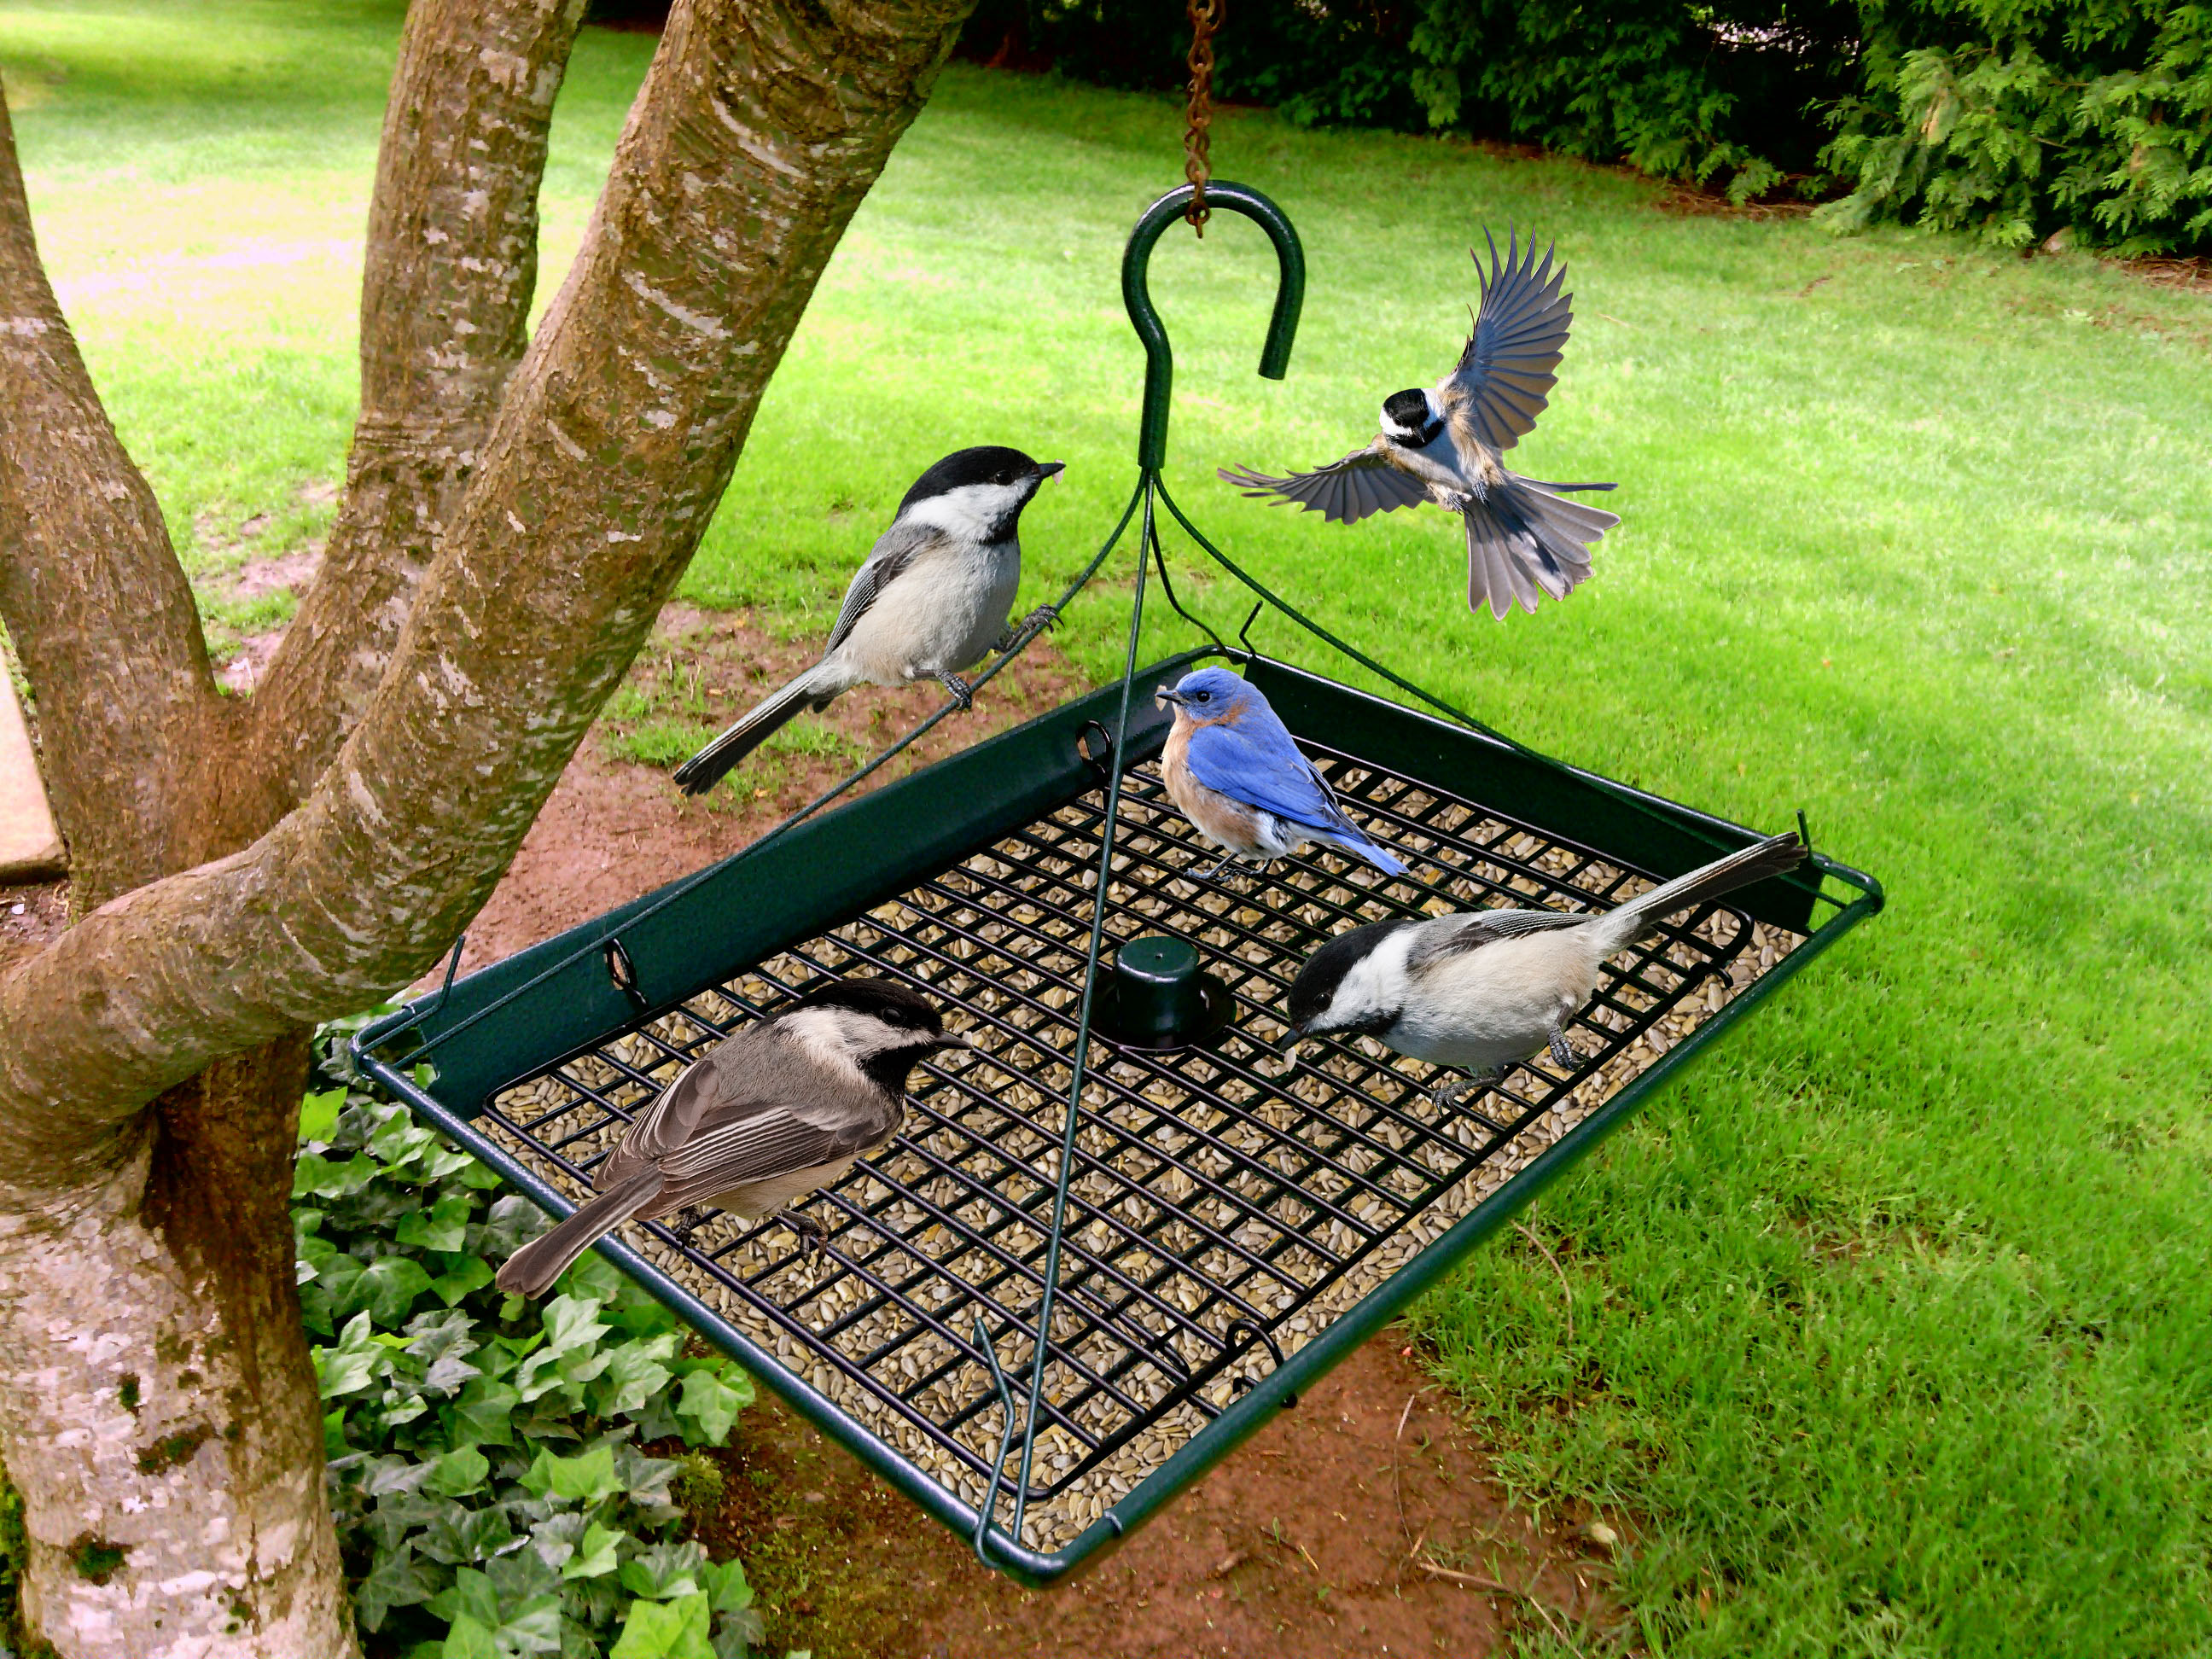 ground helpful accessories xl pcr customer window opening outside reviews blue best for bird tadge rated goods feeder in cardinal inch outdoor